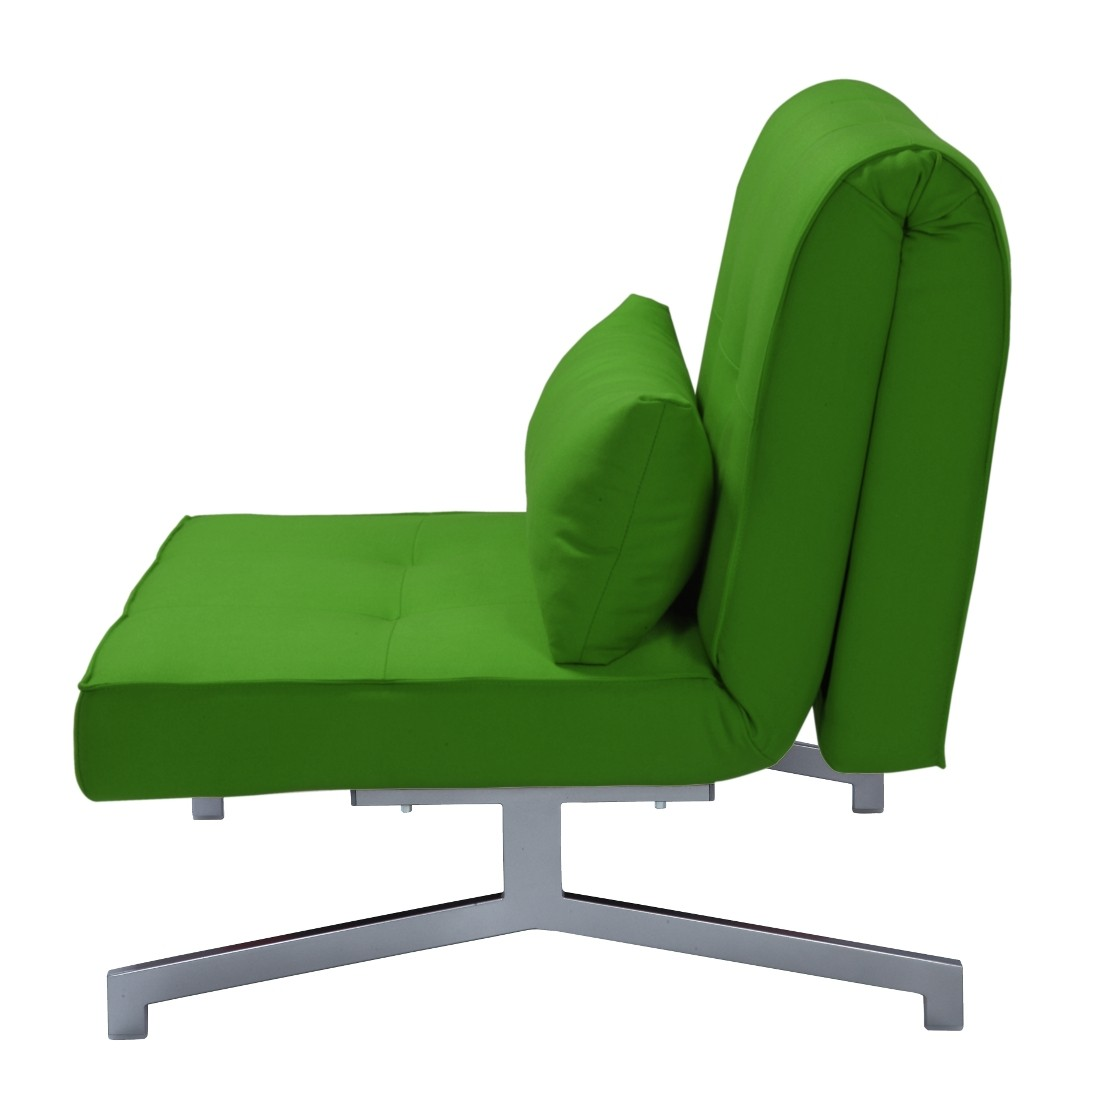 Cool Convertible Chair Bed   Bed Chair Cardini Uno